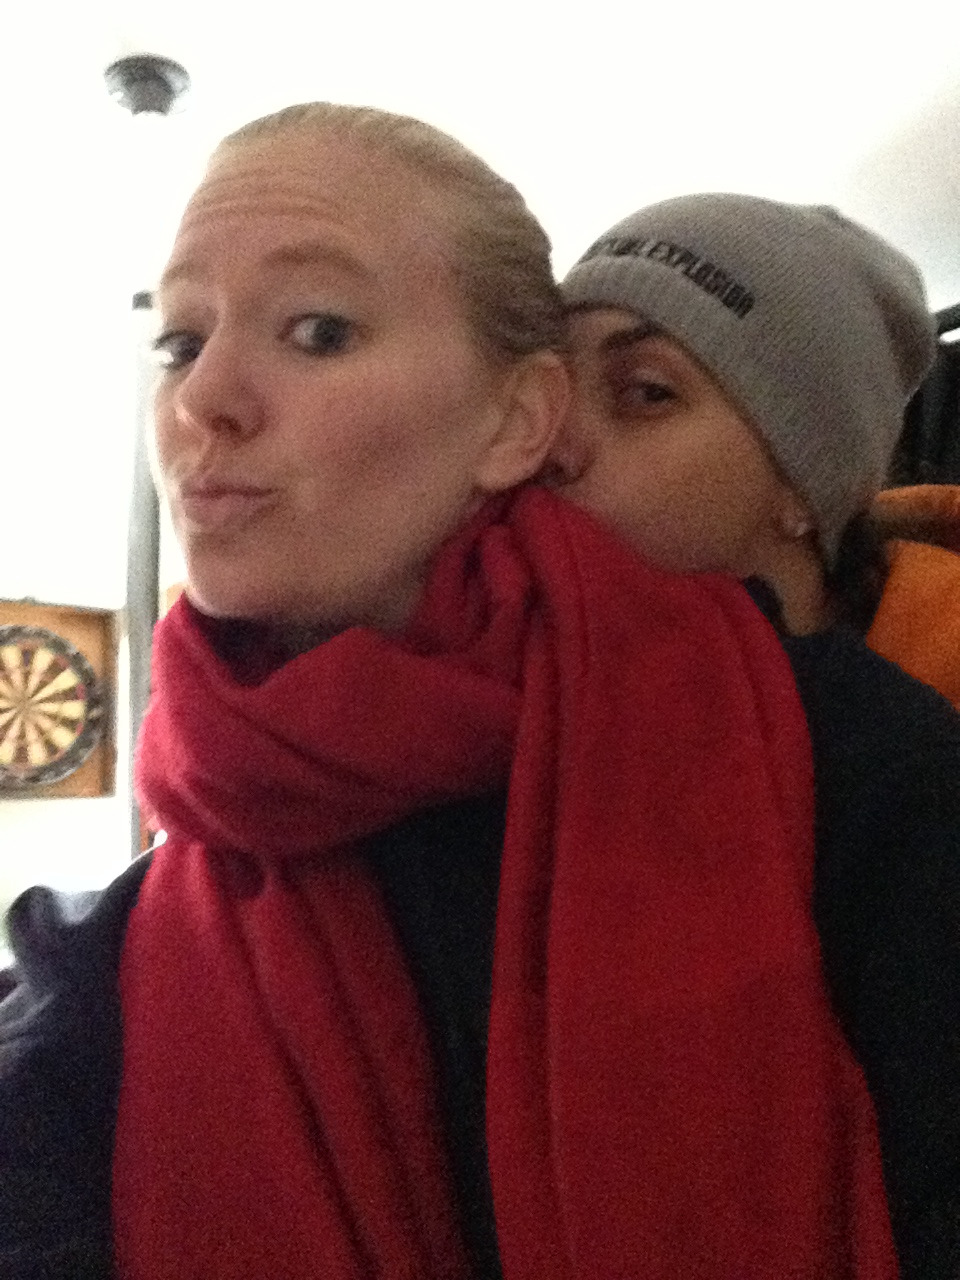 Stealing a friends scarf while my girl steals a kiss